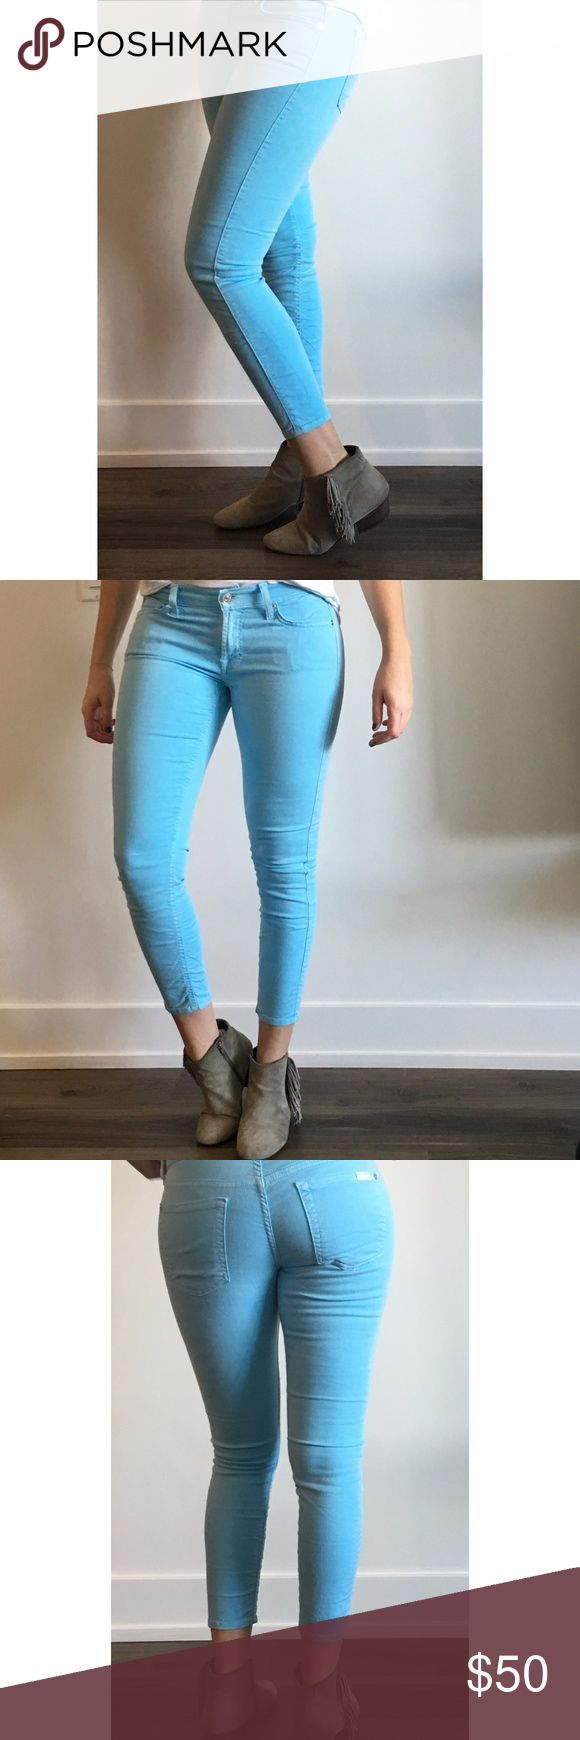 7 For All Mankind 'The Cropped Skinny' Jeans 7 For All Mankind 'The Cropped Skinny' Jeans in a beautiful sky blue denim. Crop is versatile and looks great with booties, flats or heels with an ankle strap. SIZE: 28. In great condition! Open to offers! 7 for all Mankind Jeans